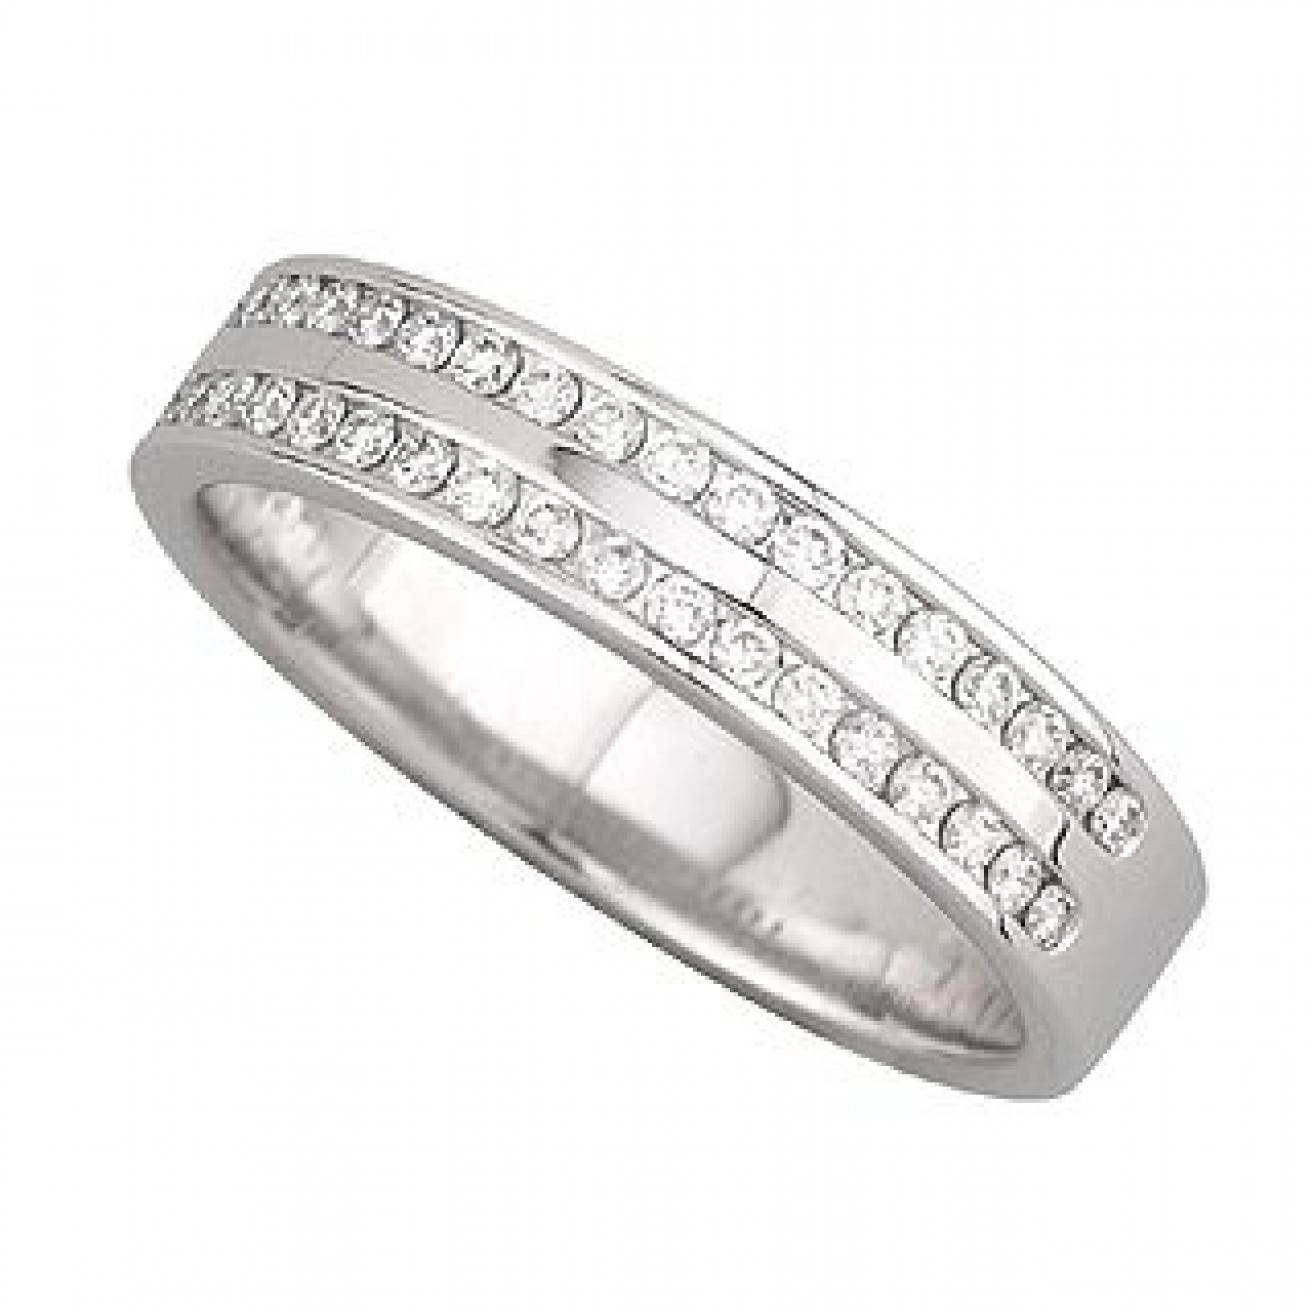 Buy Platinum Wedding Bands Online – Fraser Hart Intended For Platinum Diamond Wedding Rings (View 4 of 15)